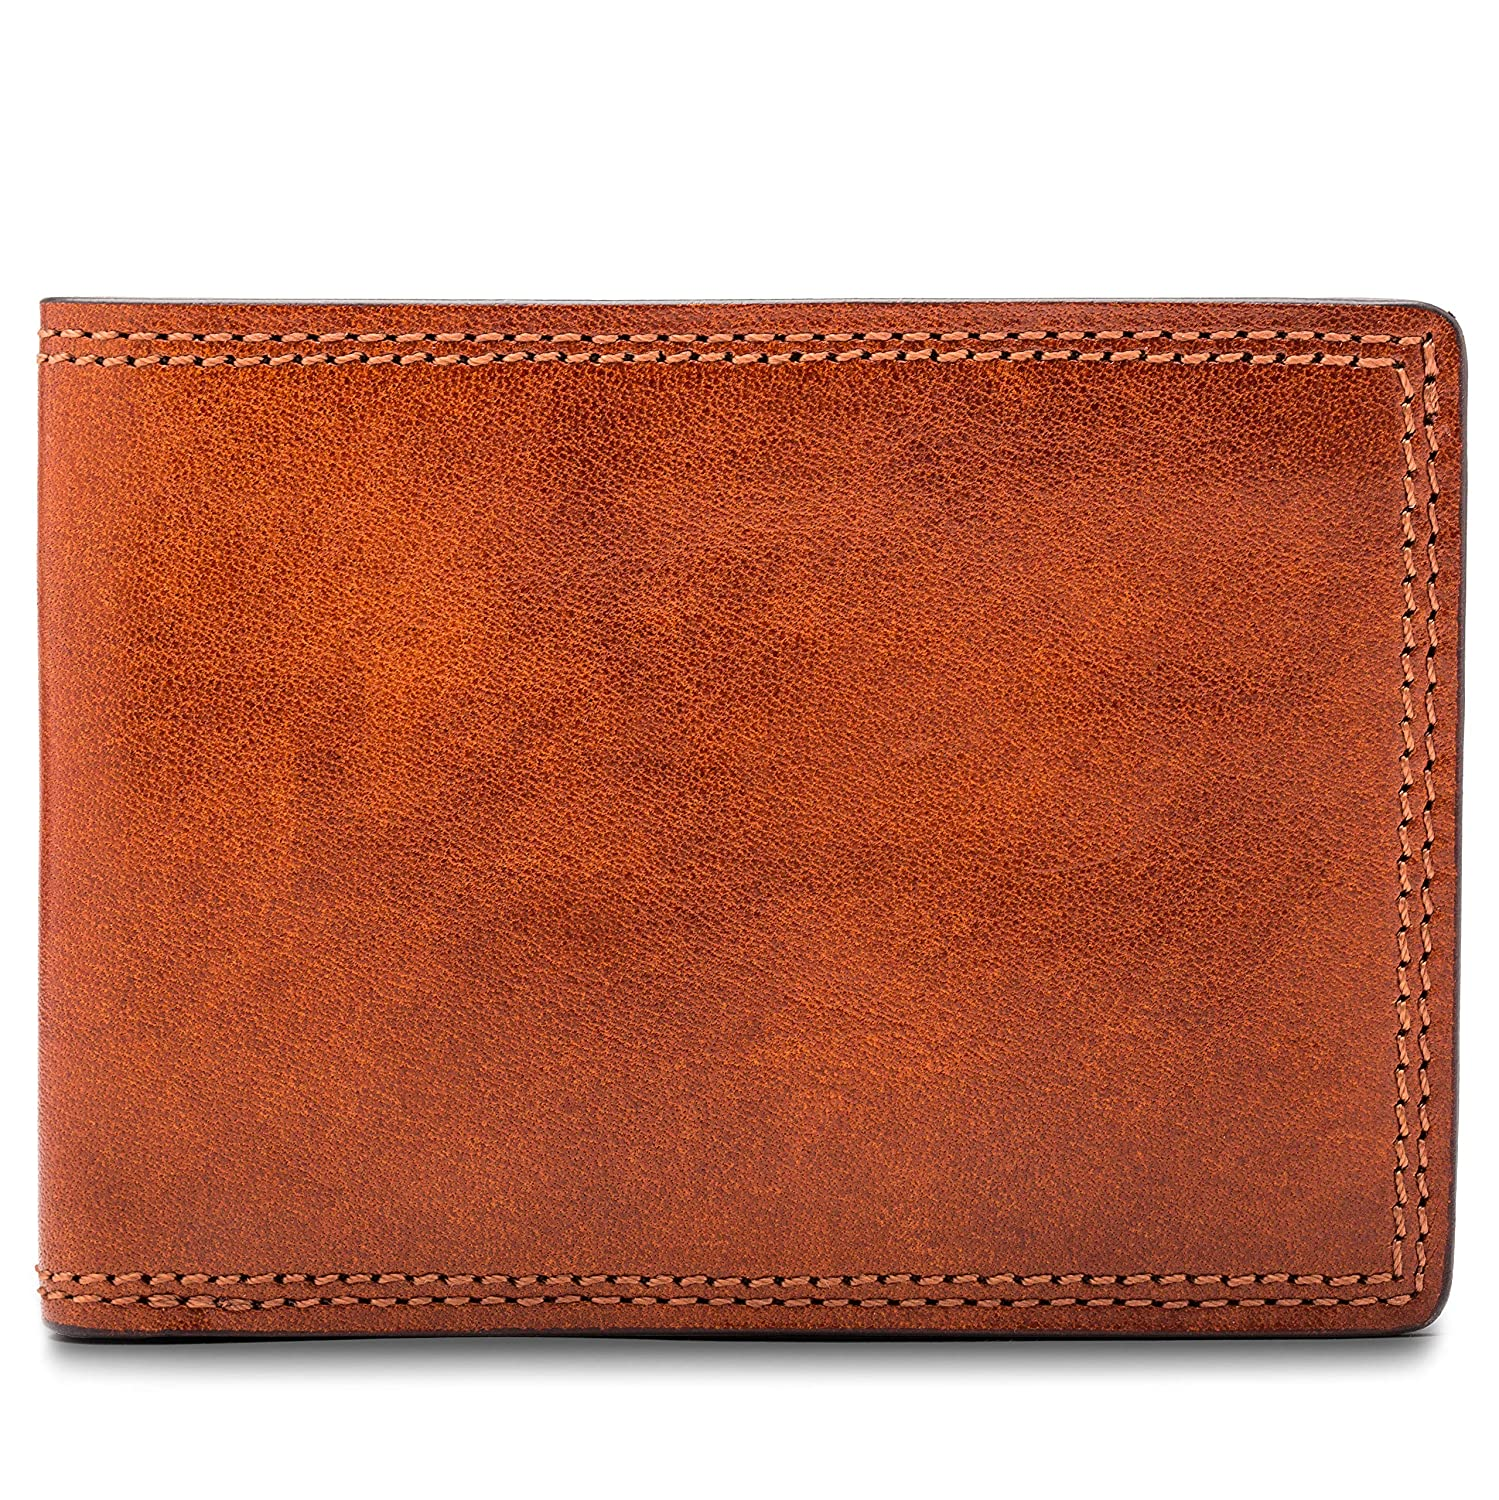 Bosca Mens Small Bifold Leather Wallet